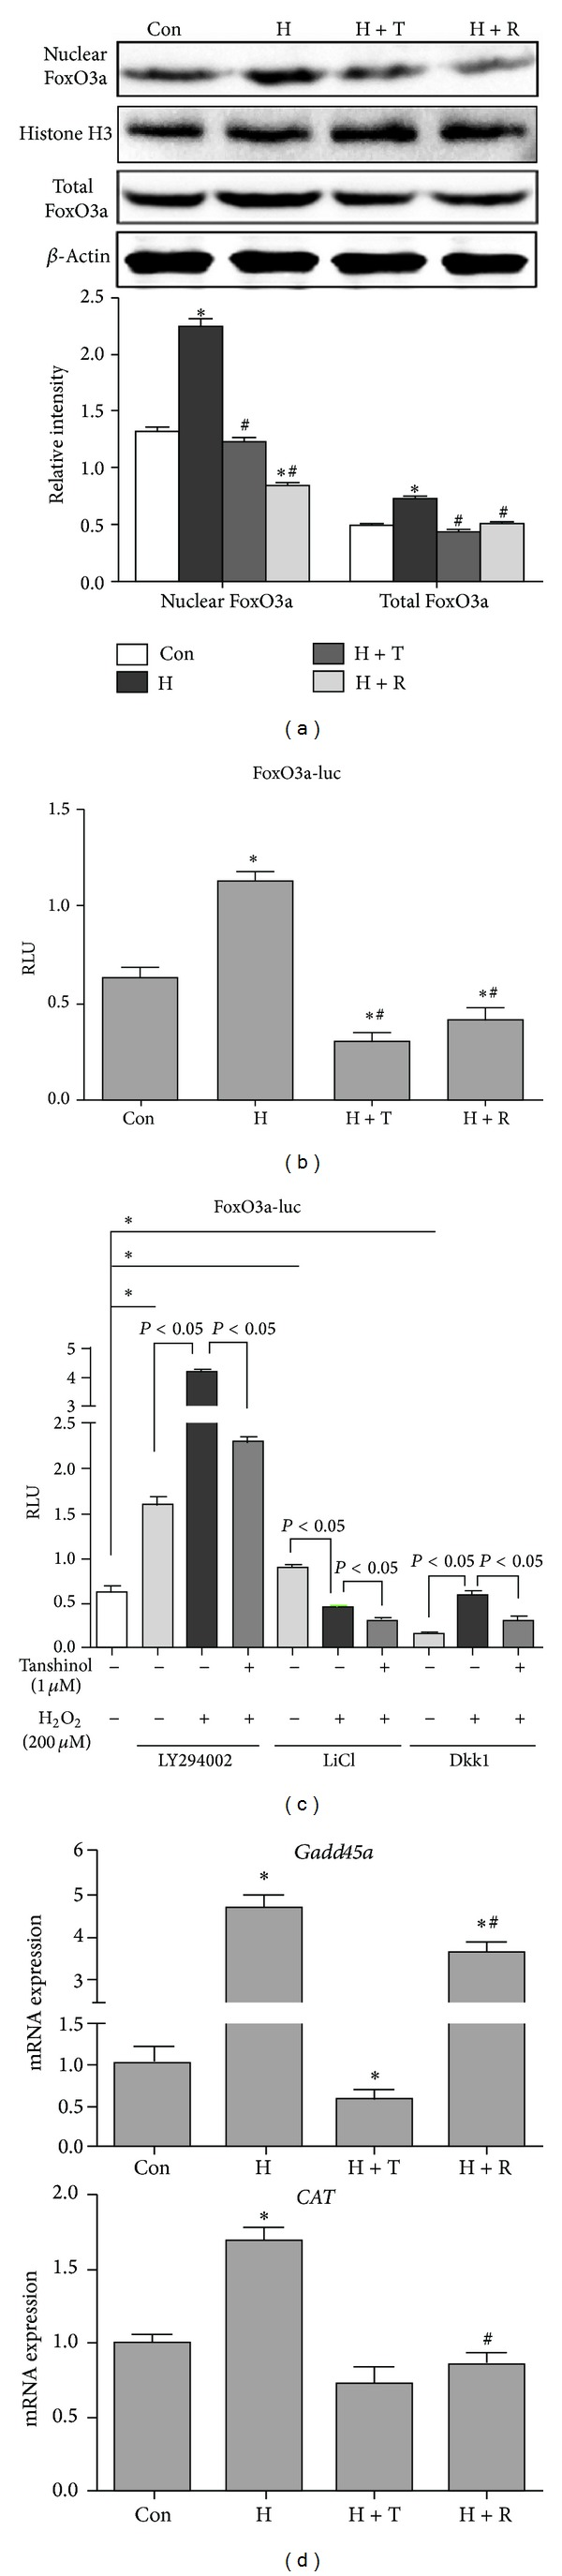 Tanshinol attenuates the activation of FoxO3a in response to oxidative stress. (a) C2C12 cells were treated as described in Figure 4 , and protein expressions from whole cell lysates and nuclear fractions were immunoblotted for FoxO3a, β -actin (whole lysates marker), and Histone H3 (nuclear marker). Representative immunoblots were shown in upper panel. Quantitative analysis of relative band intensities of protein was showed in lower panel. (b and c) Cells were transfected with the FoxO3a-luc reporter plasmid, and the treatment of Wnt3a was replaced with LY294002 (50 μ M), LiCl (10 mM), or Dkk1 (500 ng/mL), and other procedures of experiments were addressed as described in Figure 5(b) . (d) C2C12 cells were treated as described in Figure 4 , and the expression levels of Gadd45 and CAT mRNA were quantified by qRT-PCR and normalized to GADPH mRNA. Note: (1) Con (vehicle control); (2) H (H 2 O 2 ); (3) T (Tanshinol); (4) H + T (H 2 O 2 + Tanshinol); (5) H + R (H 2 O 2 + Resveratrol). Error bars indicate mean ± SEM of at least three independent experiments. * P